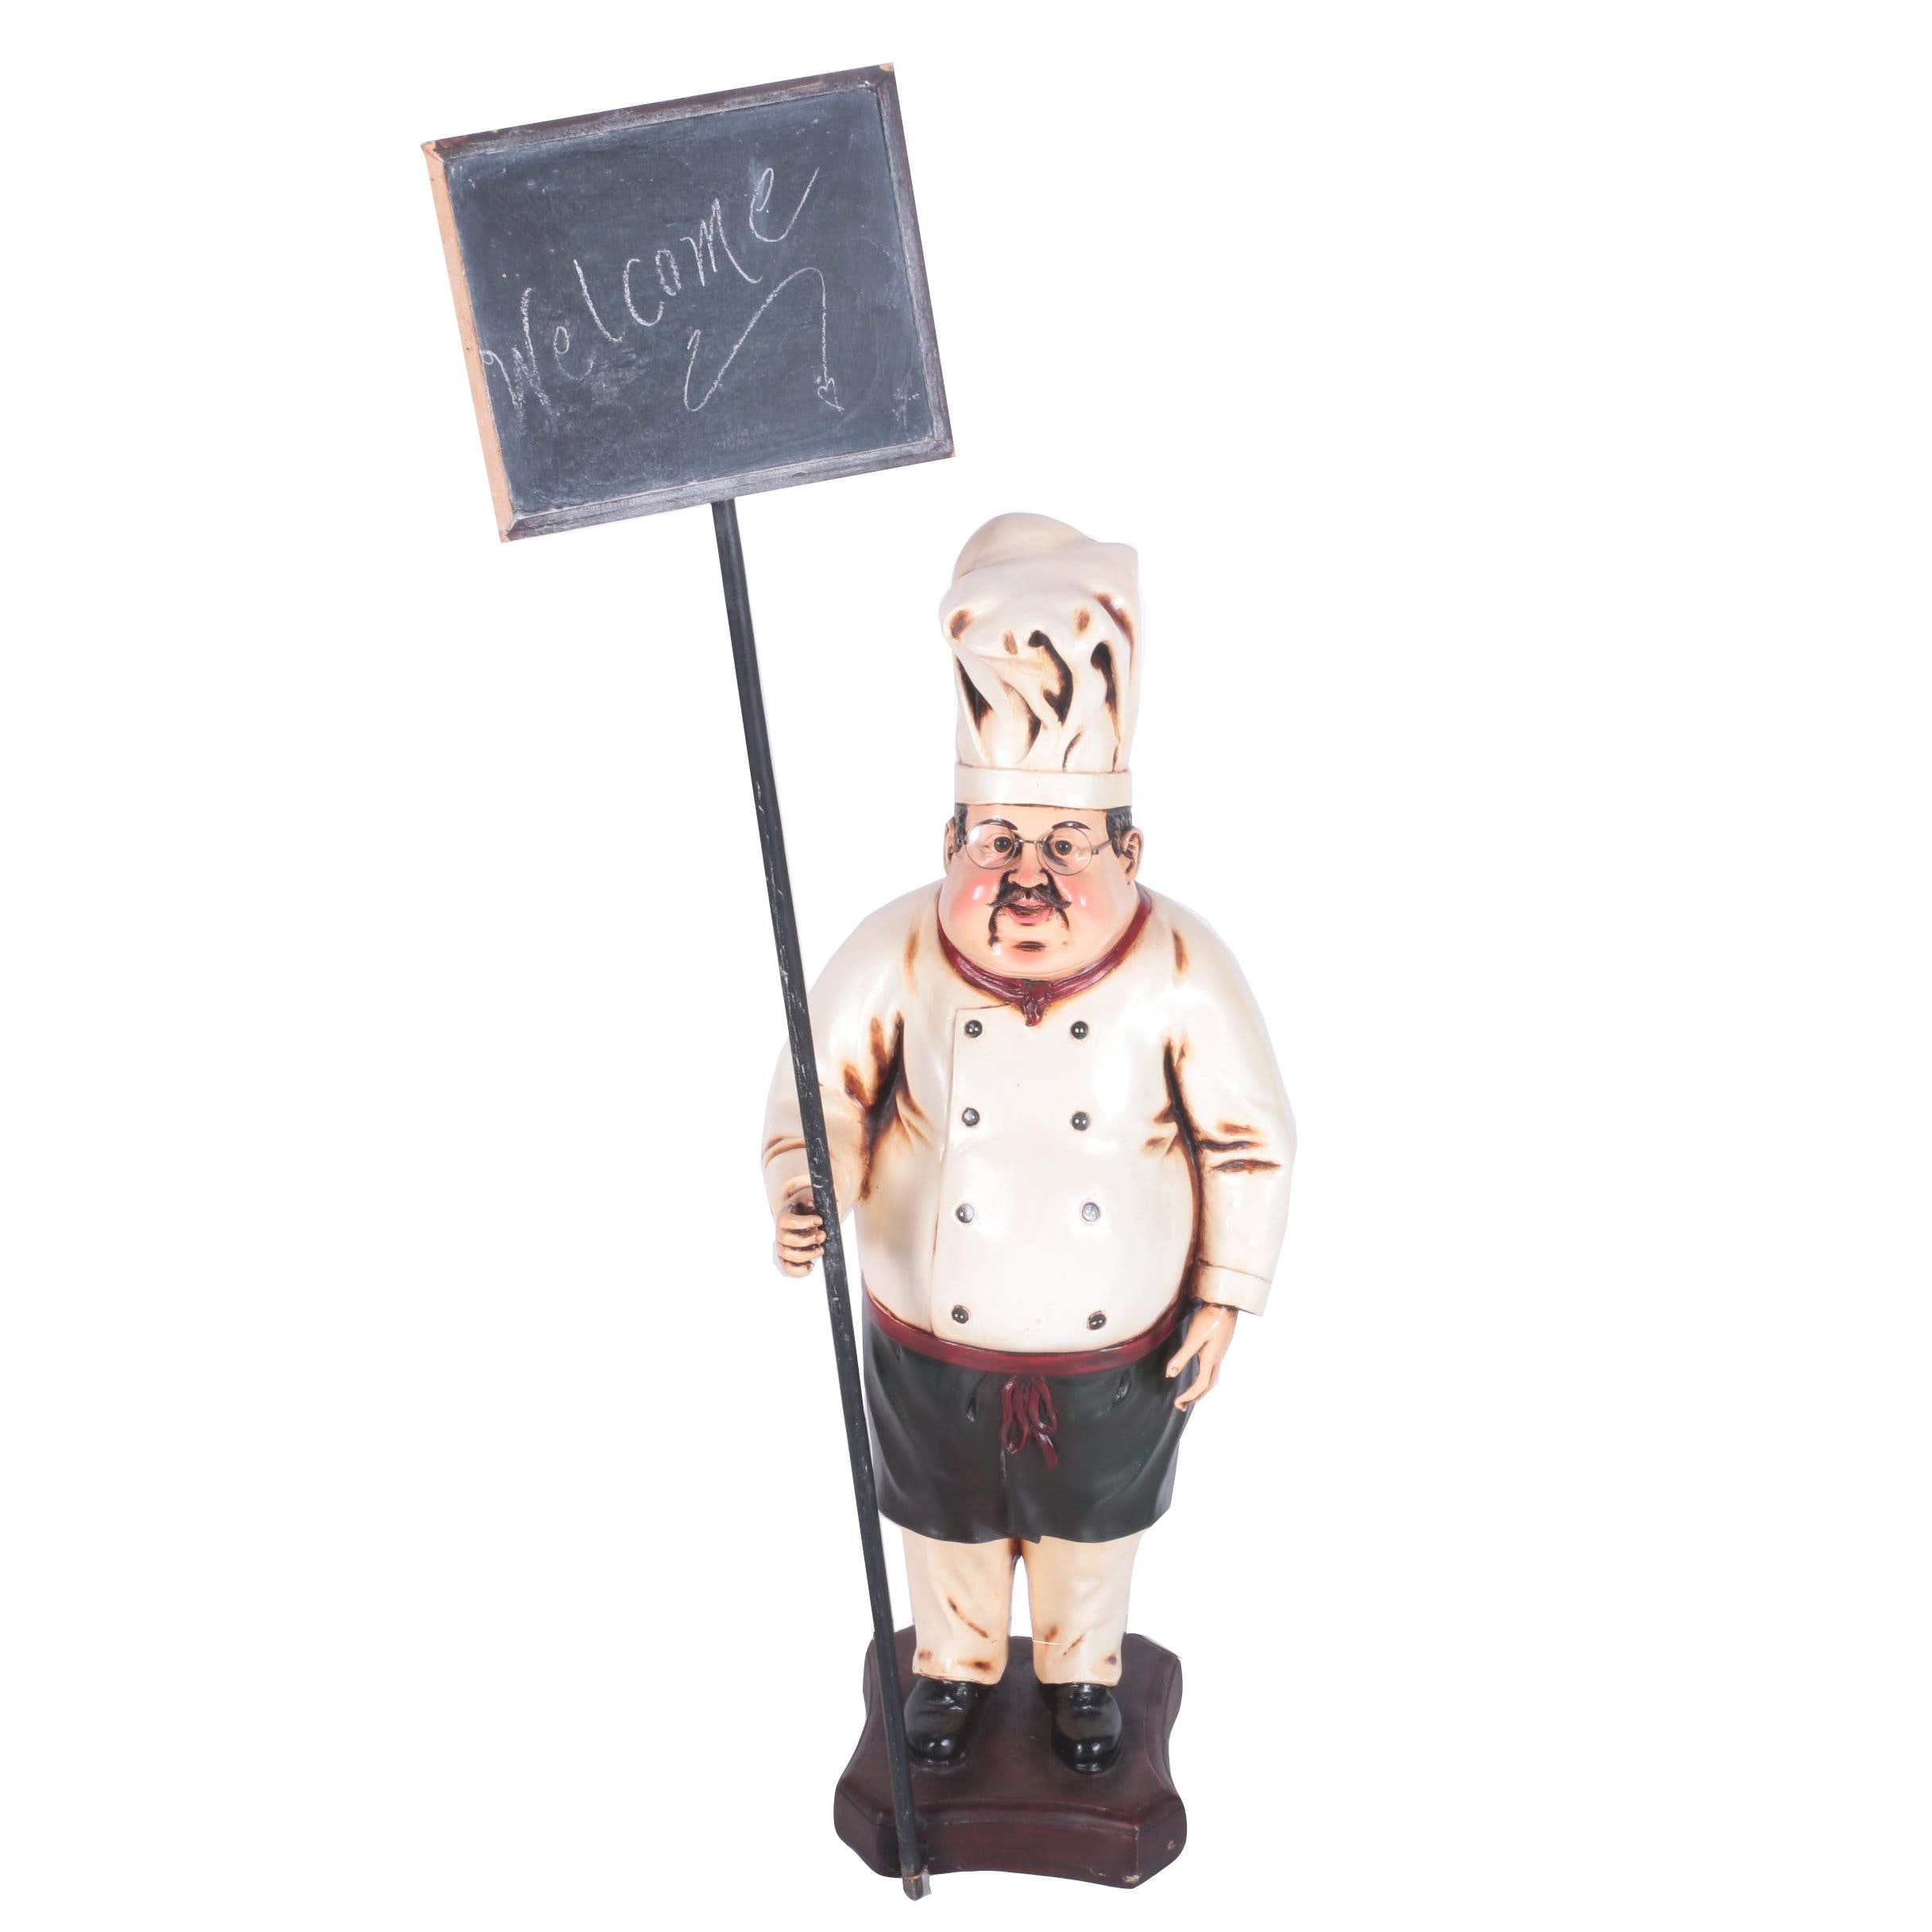 Standing Chef Sculpture with a Chalkboard